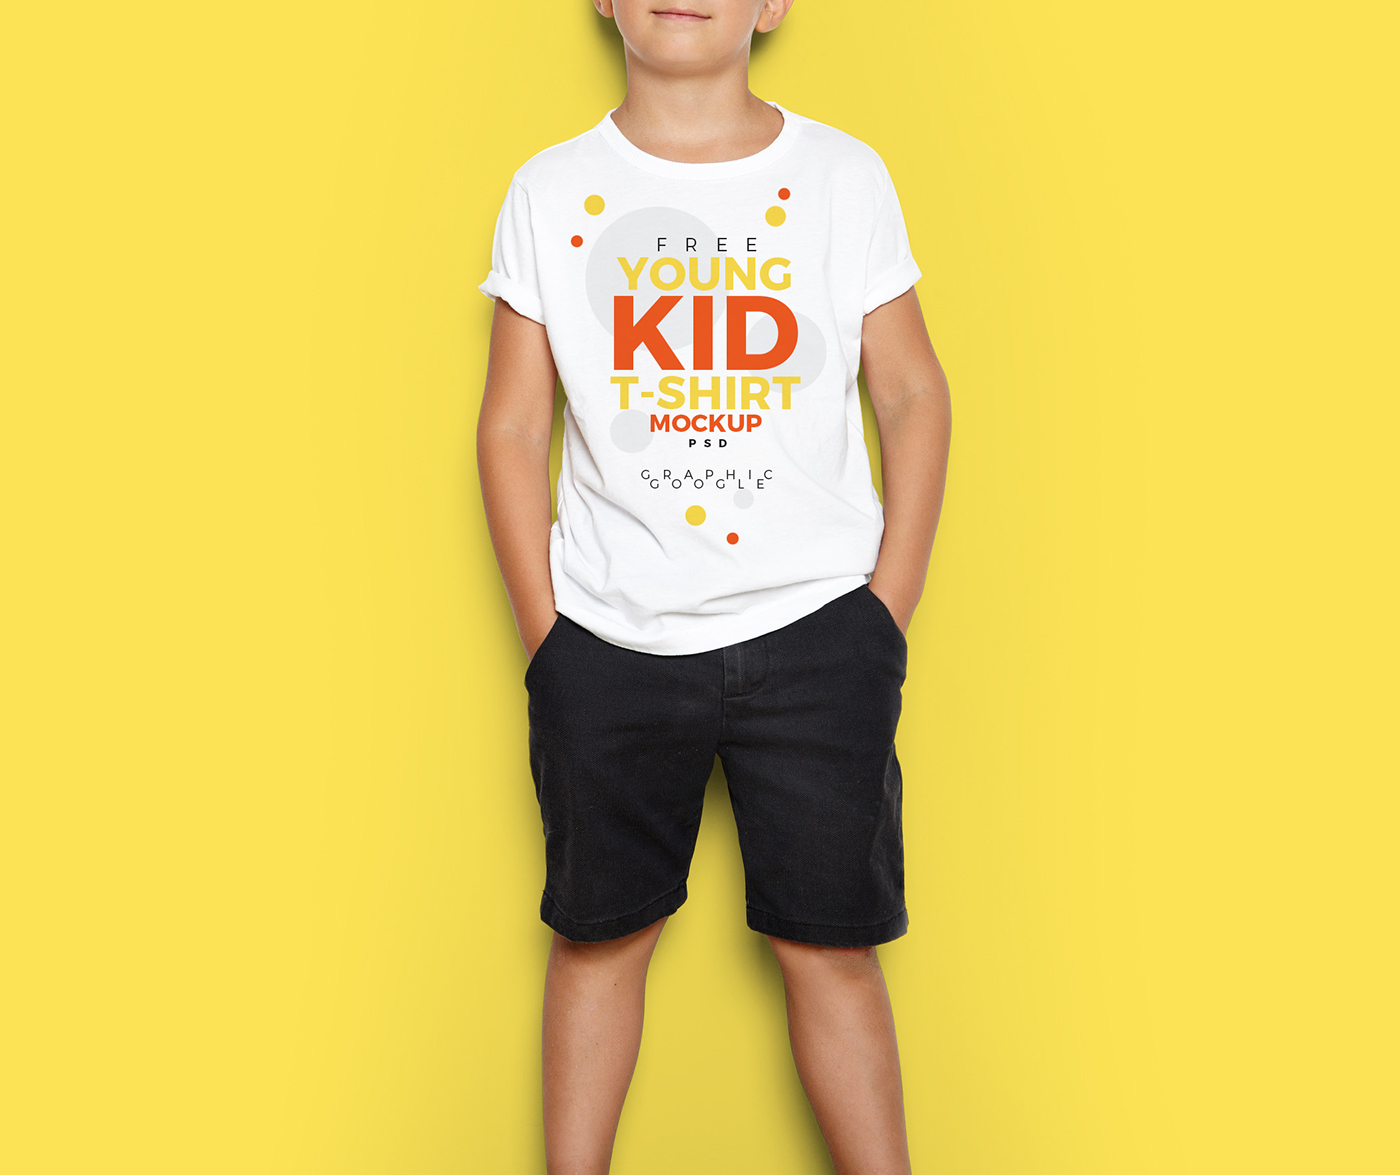 397422ba2 Free Young Kid T-Shirt Mock-Up PSD on Behance